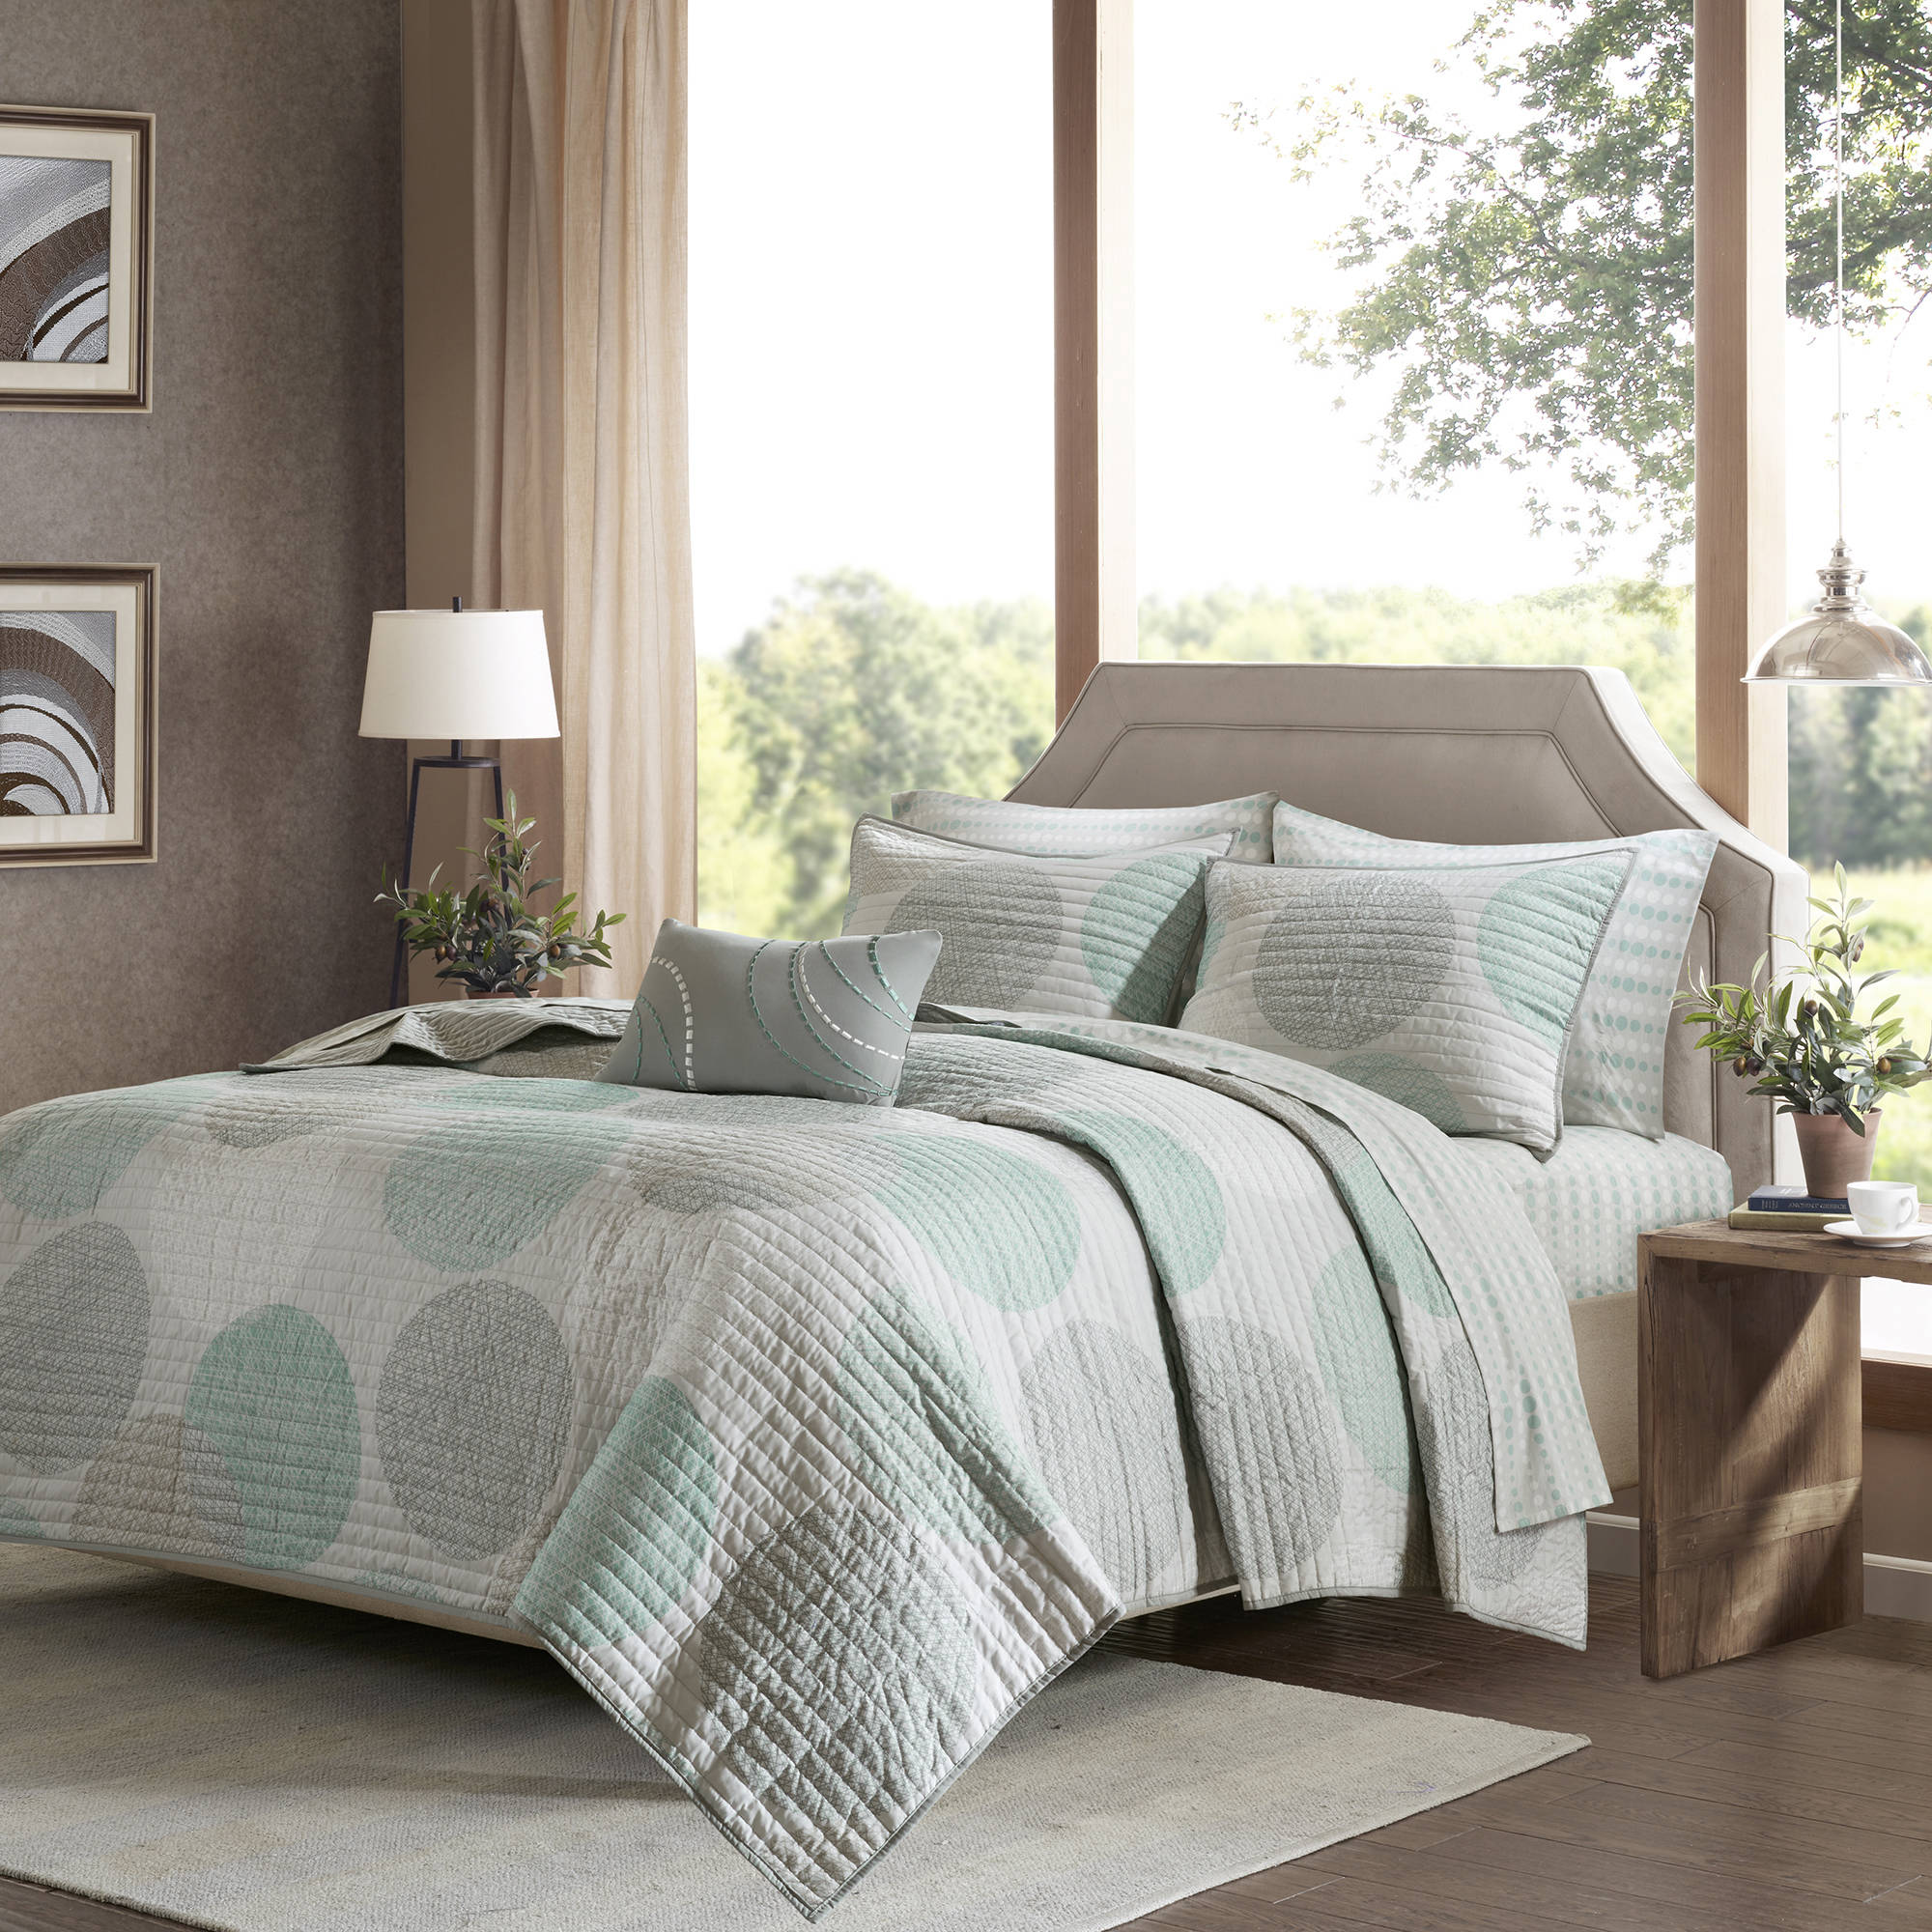 Home Essence Cabrillo Complete Coverlet and Sheet Set